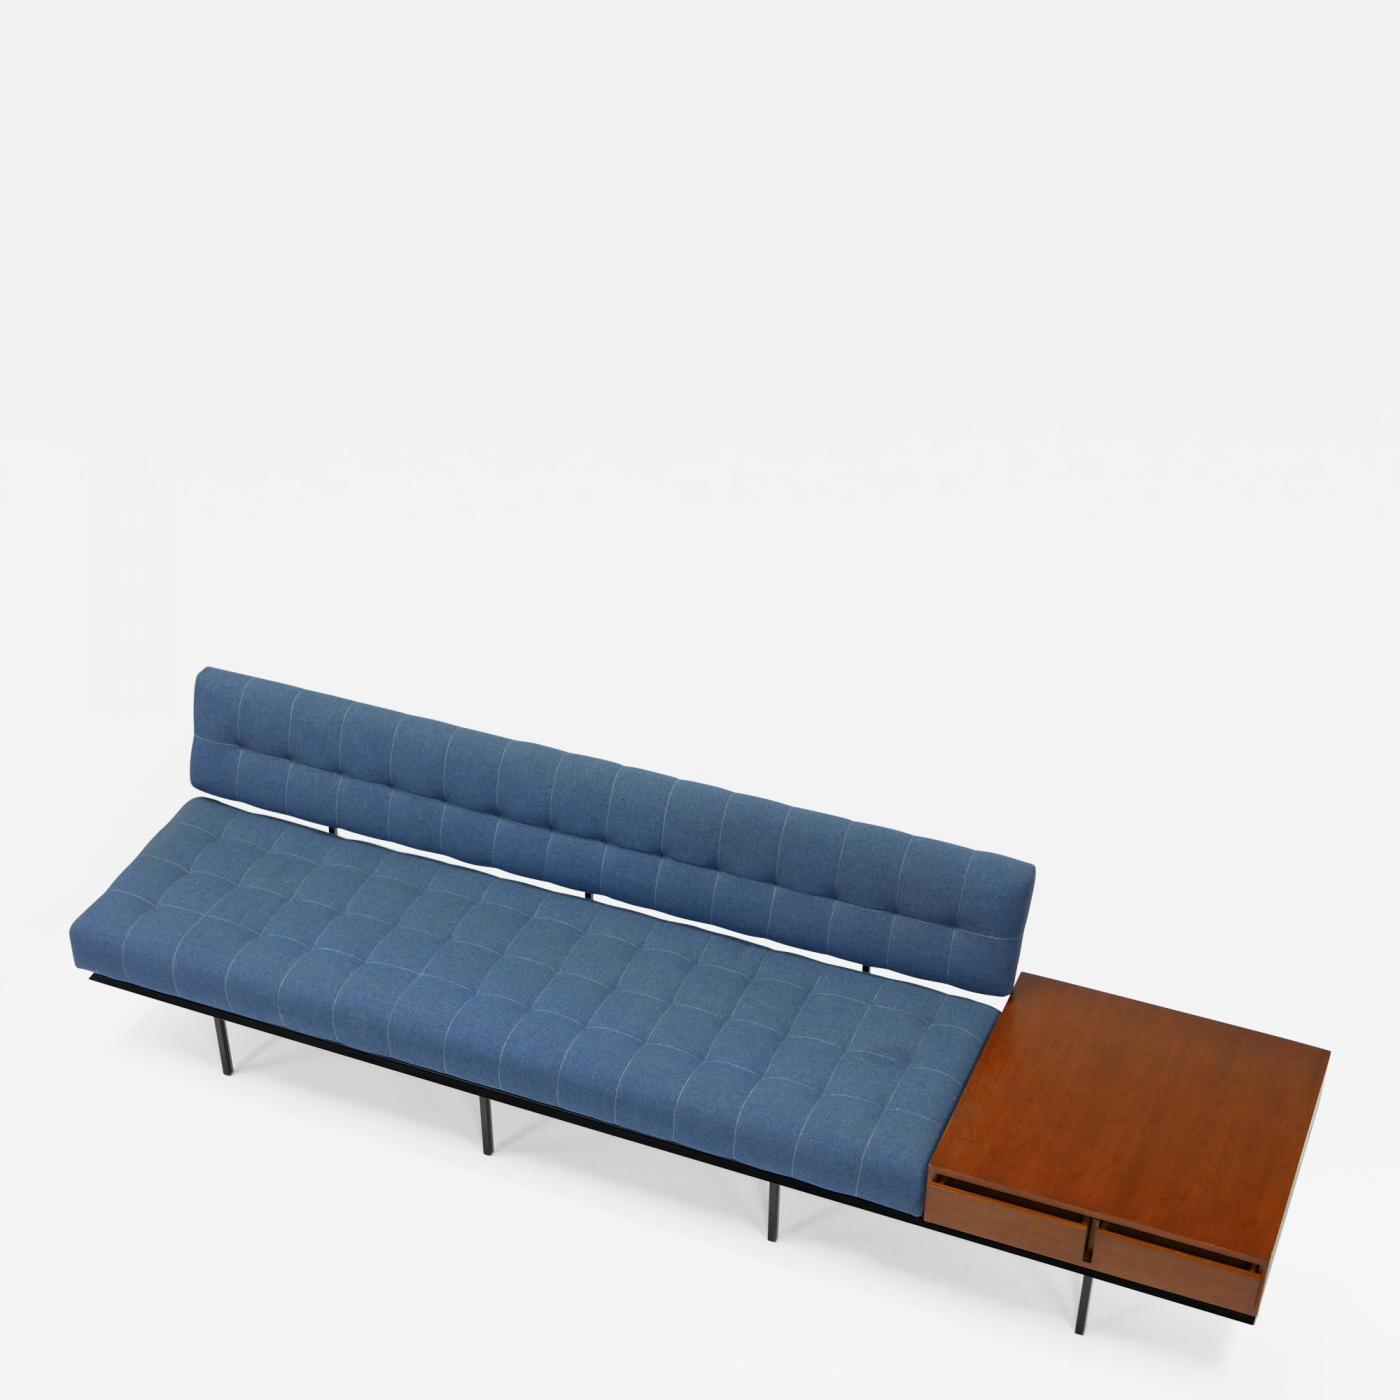 Florence knoll minimalist sofa and cabinet by florence knoll for Minimalist sofa